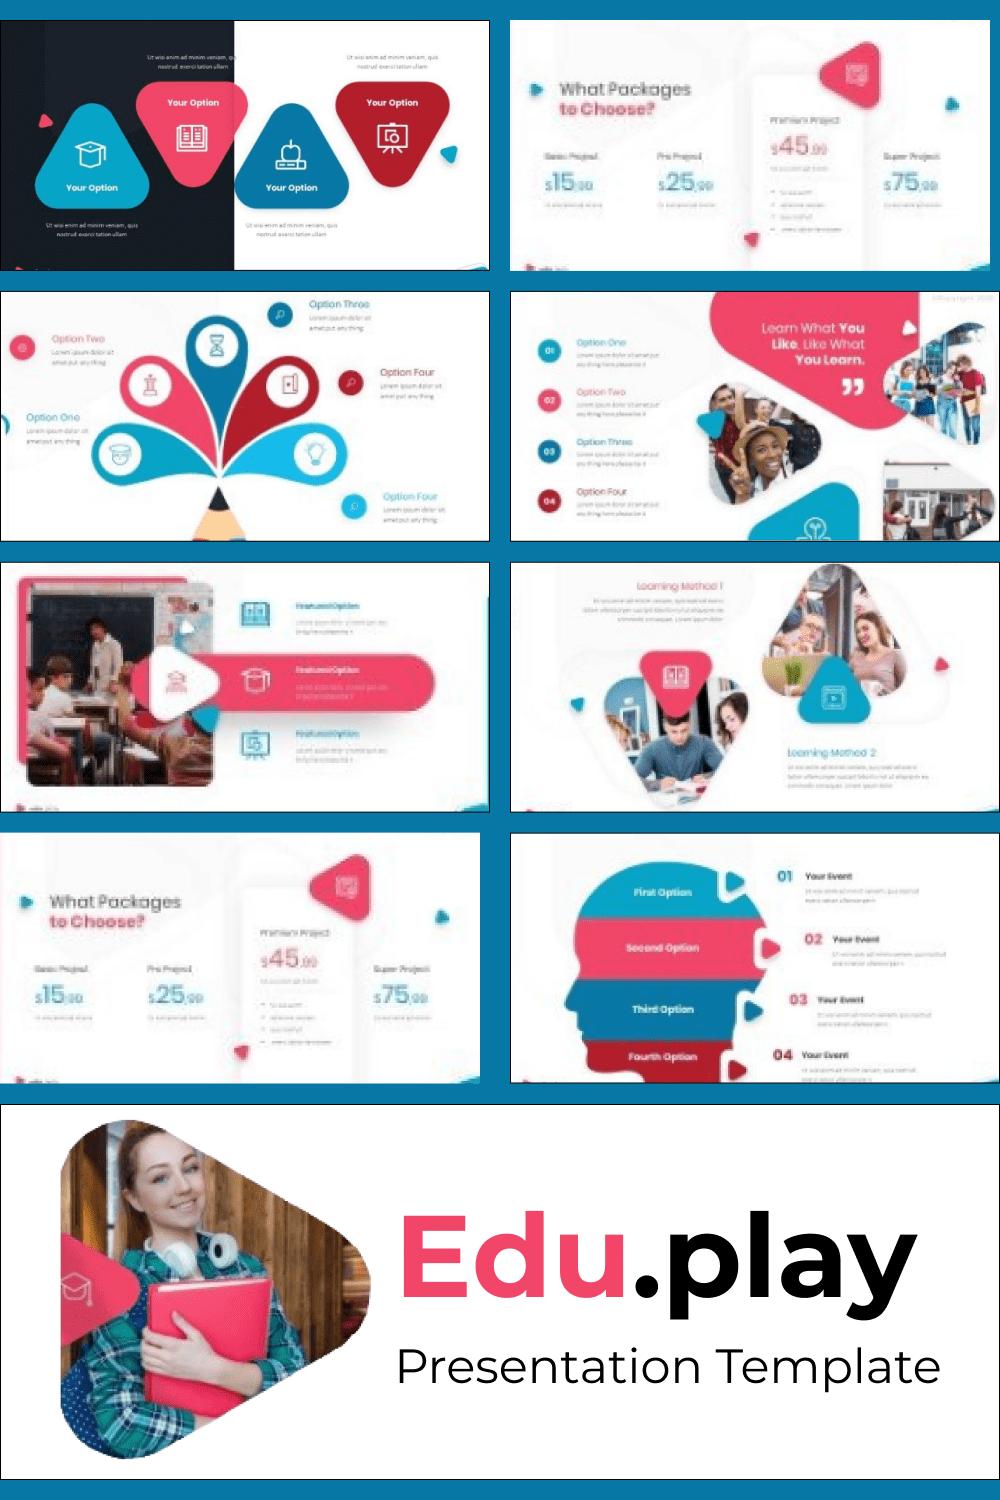 This template has a full collection of vivid graphics and infographics which will decorate your presentation.